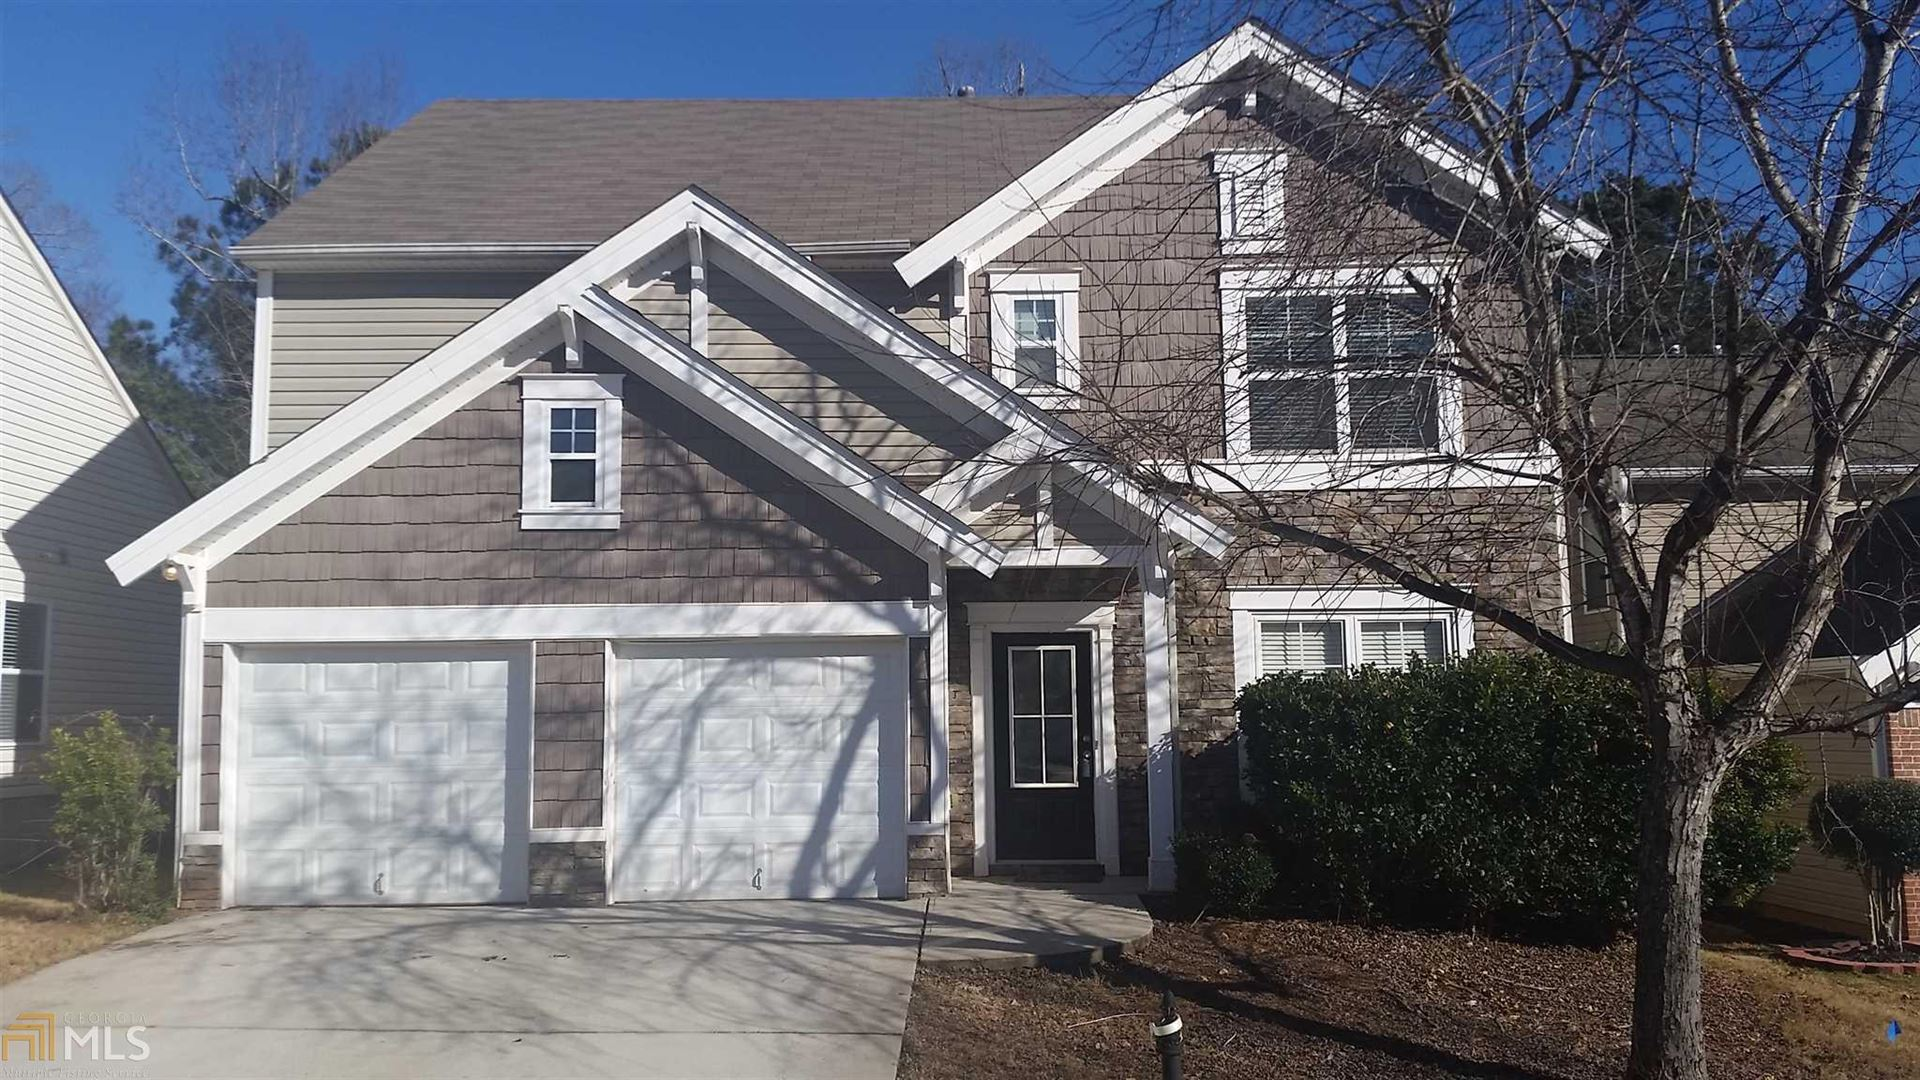 1580 Thornwick Trace, Stockbridge, GA 30281 - MLS#: 8913082